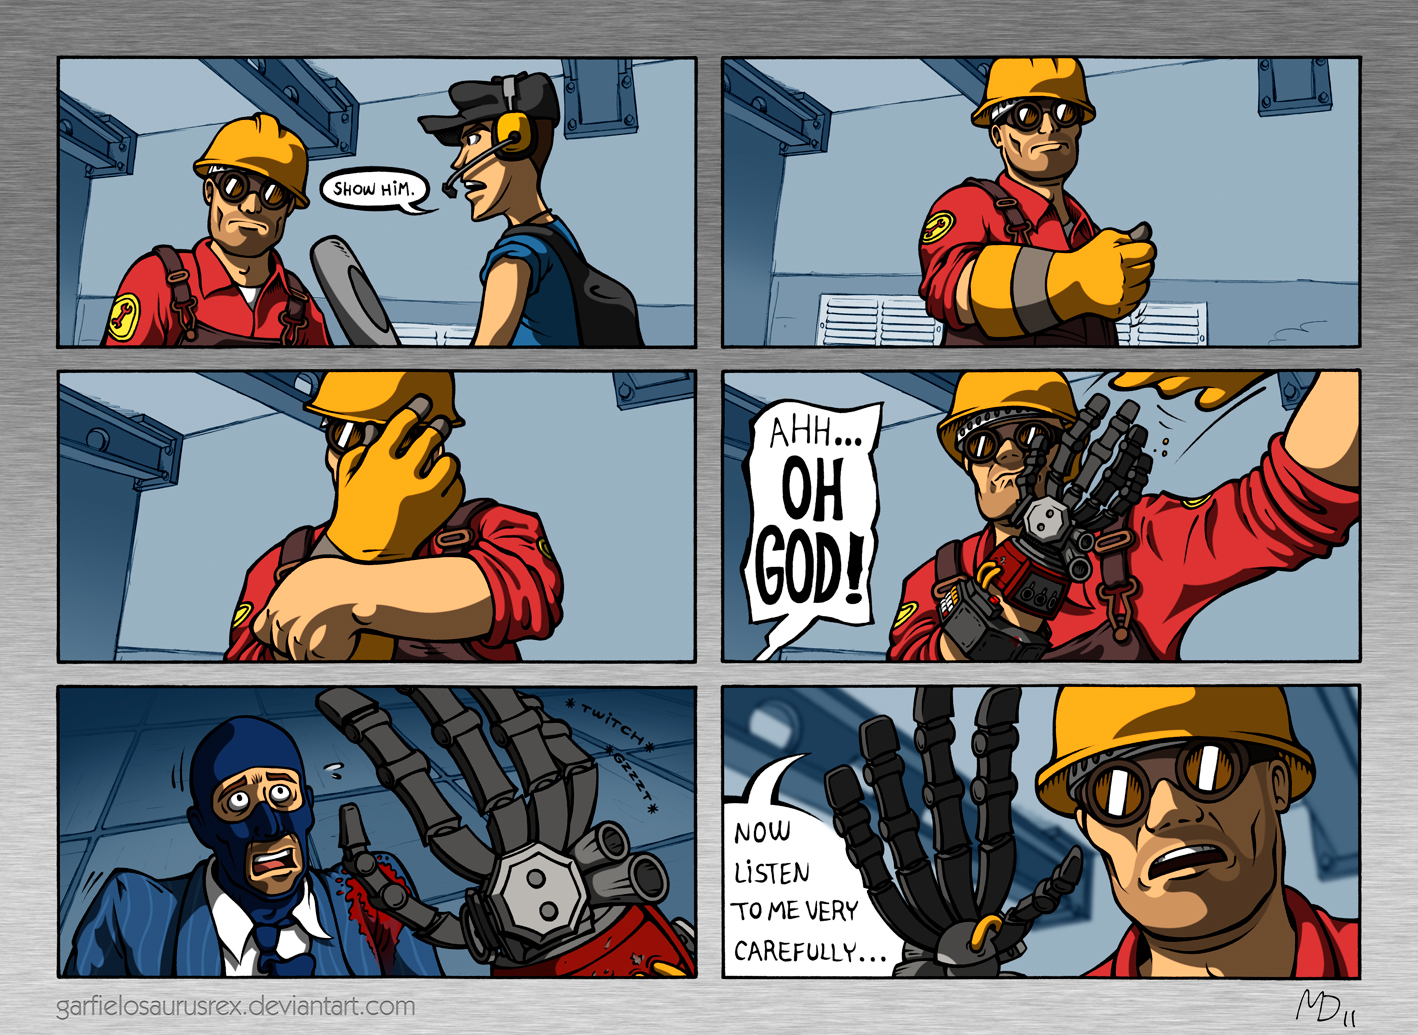 tf2__judgment_round_by_garfielosaurusrex d40ockx engie shows how his hand looks like team fortress 2 know your meme